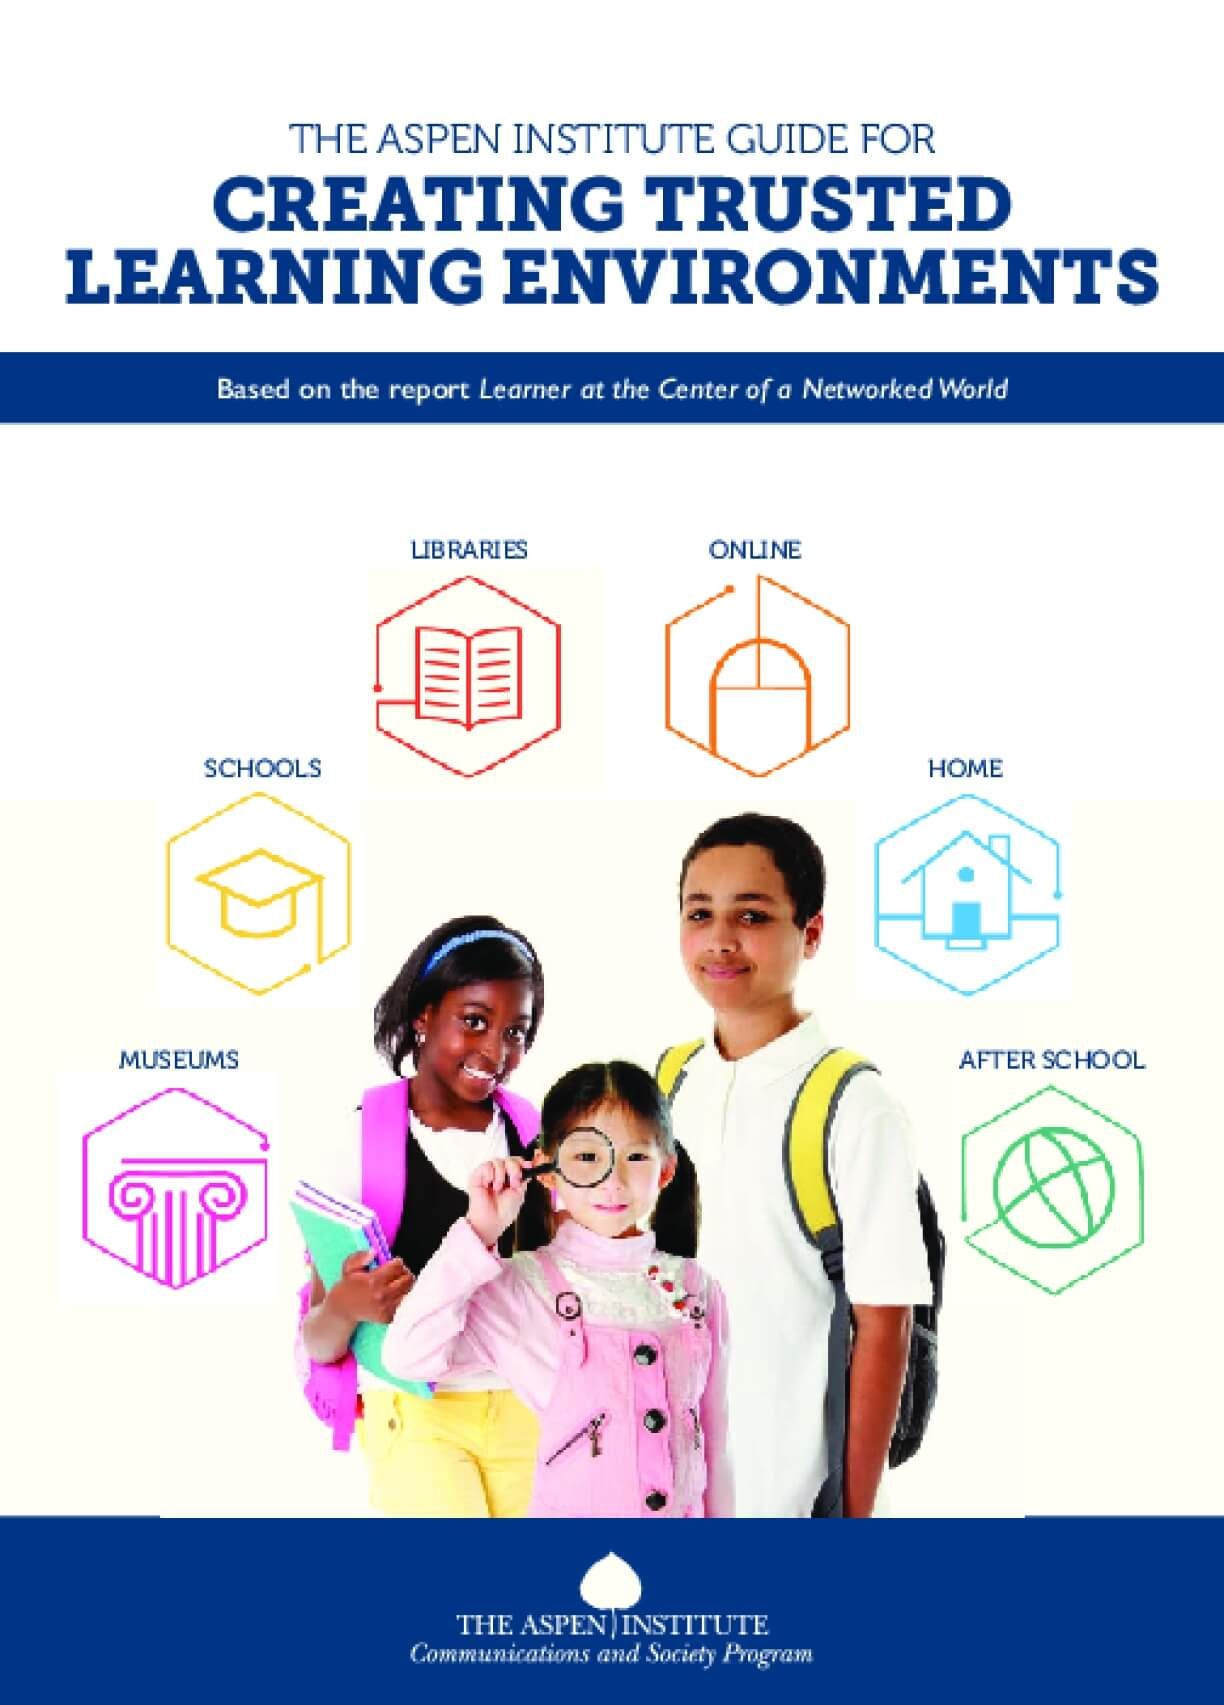 The Aspen Institute Guide for Creating Trusted Learning Environments